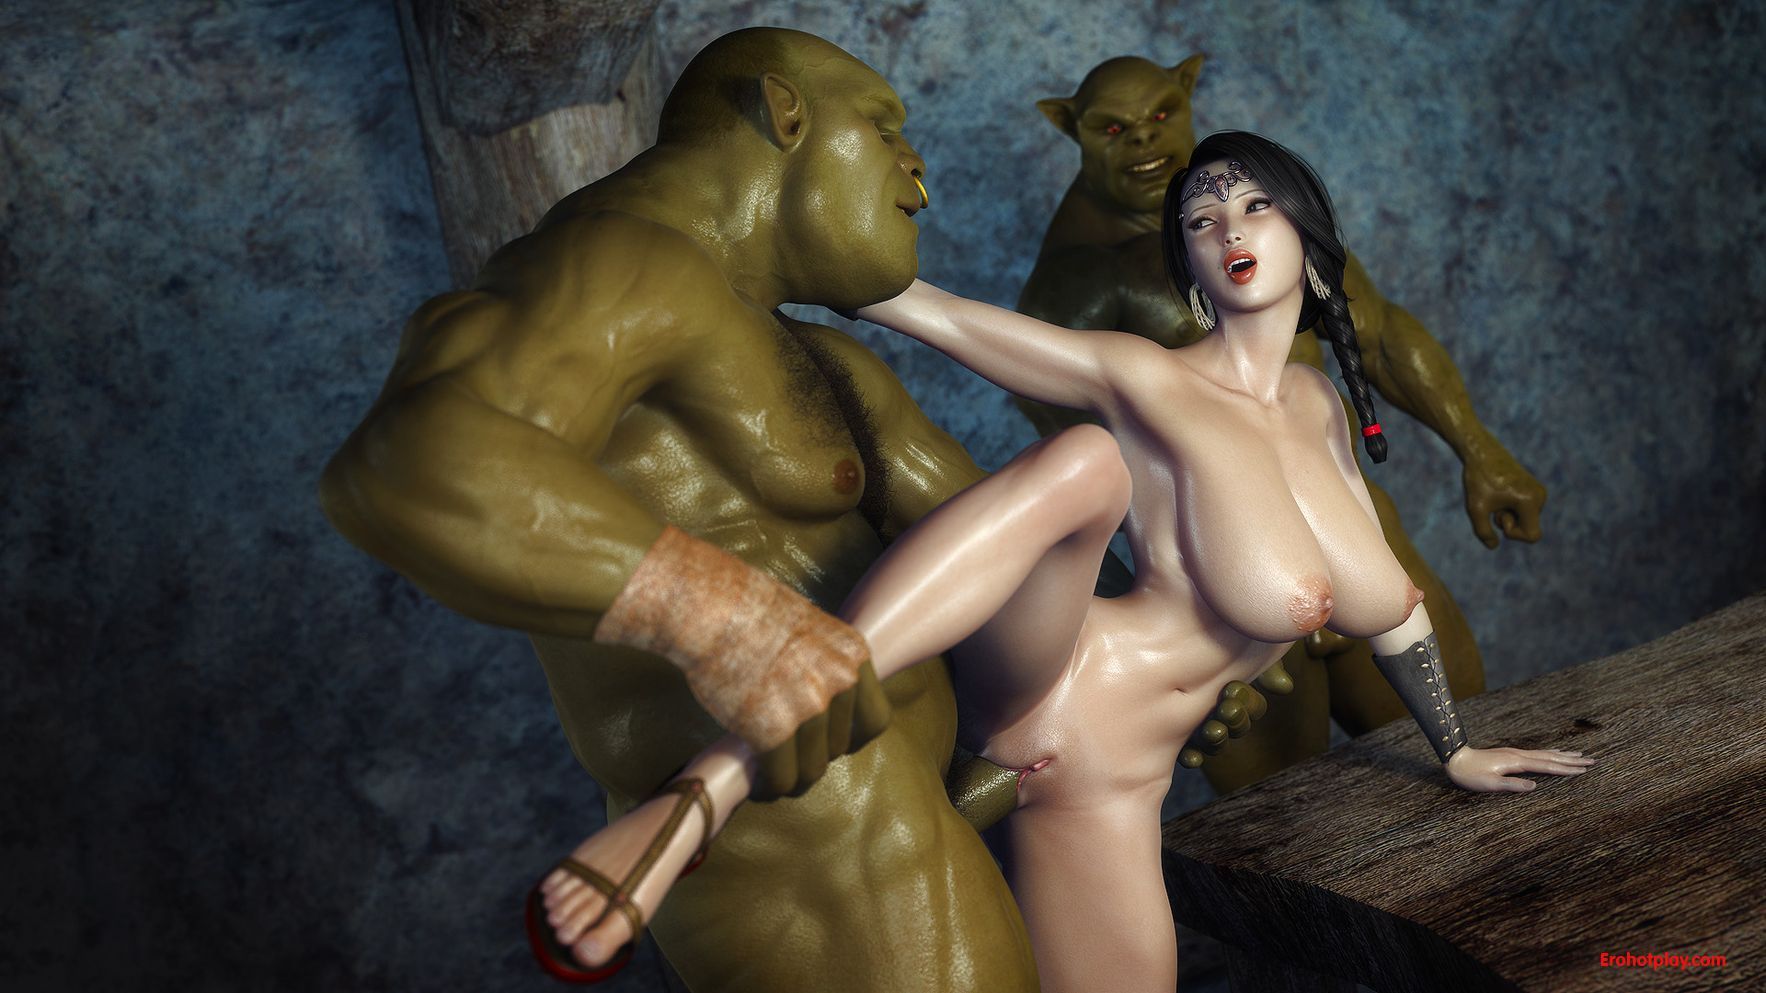 Ogre porn game naked videos